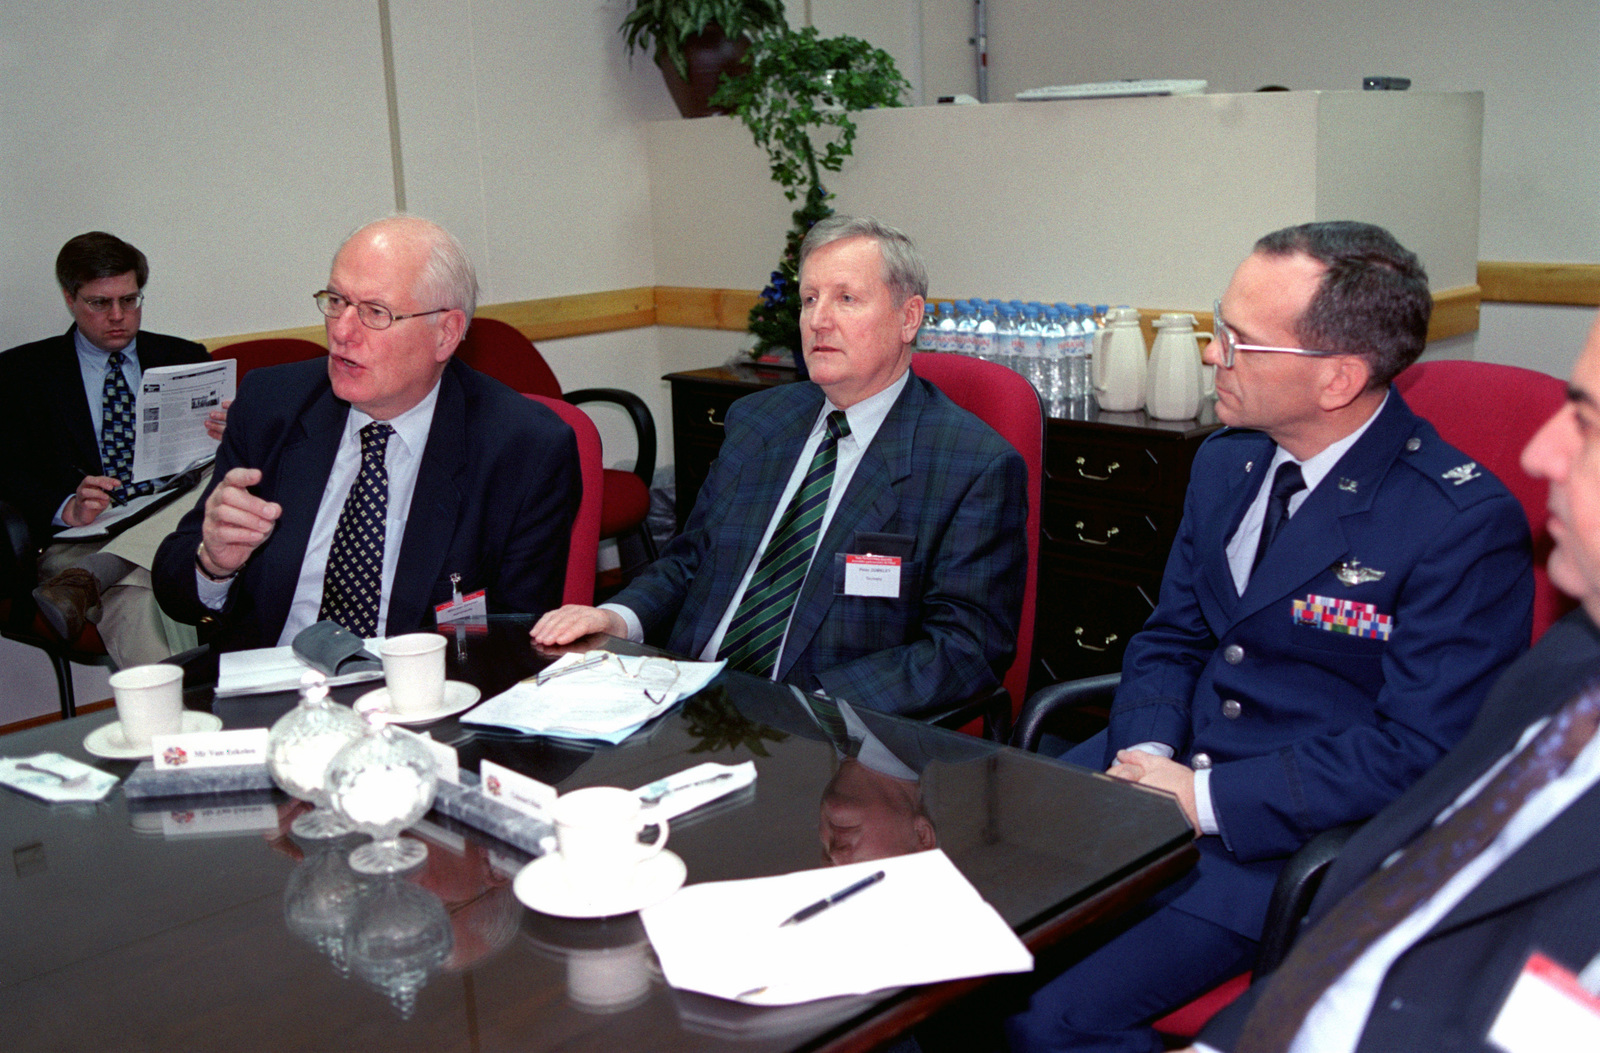 Willem Van Eekelen, a Member of a Parliament Subcommittee from the Netherlands, Peter Zumkley, and the North Atlantic Treaty Organization (NATO) Parliamentary Assembly Subcommittee on Transatlantic Defense and Security Cooperation discuss the Incirlik Air Base mission